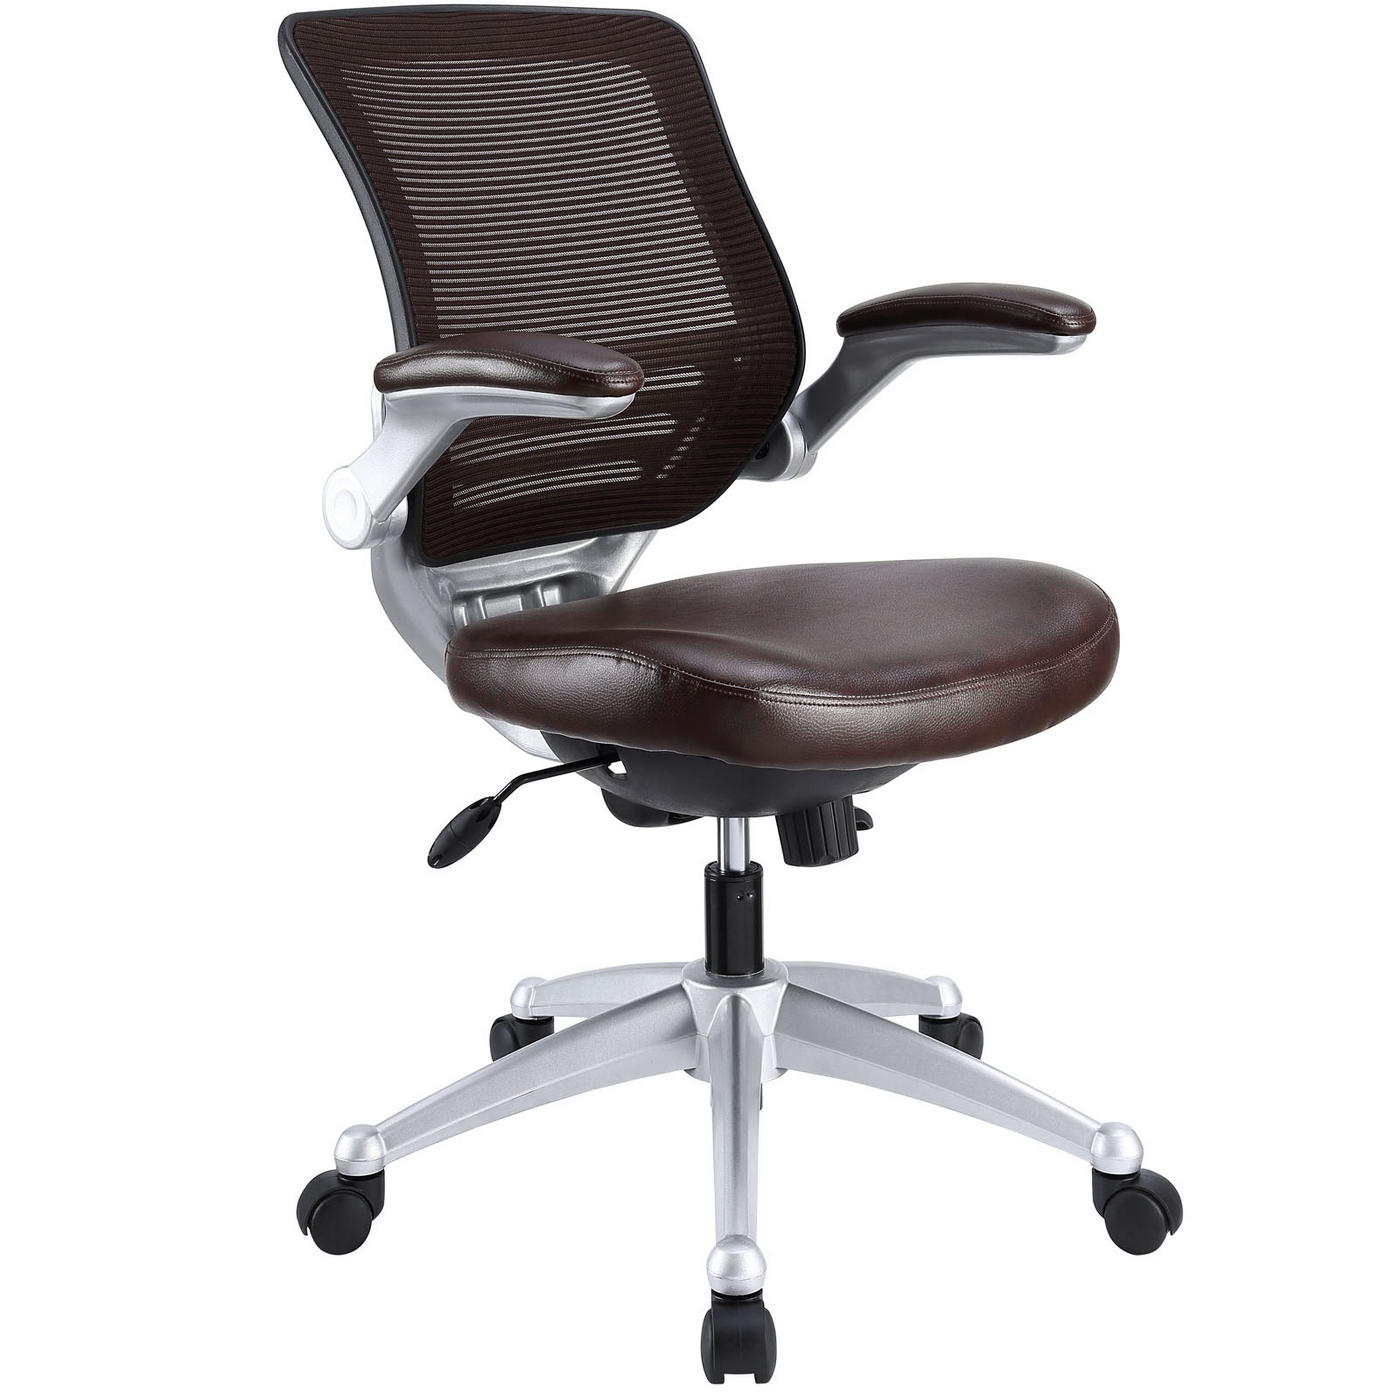 Mesh Ergonomic Office Chair Edge Modern Adjustable Ergonomic Leather Office Chair W